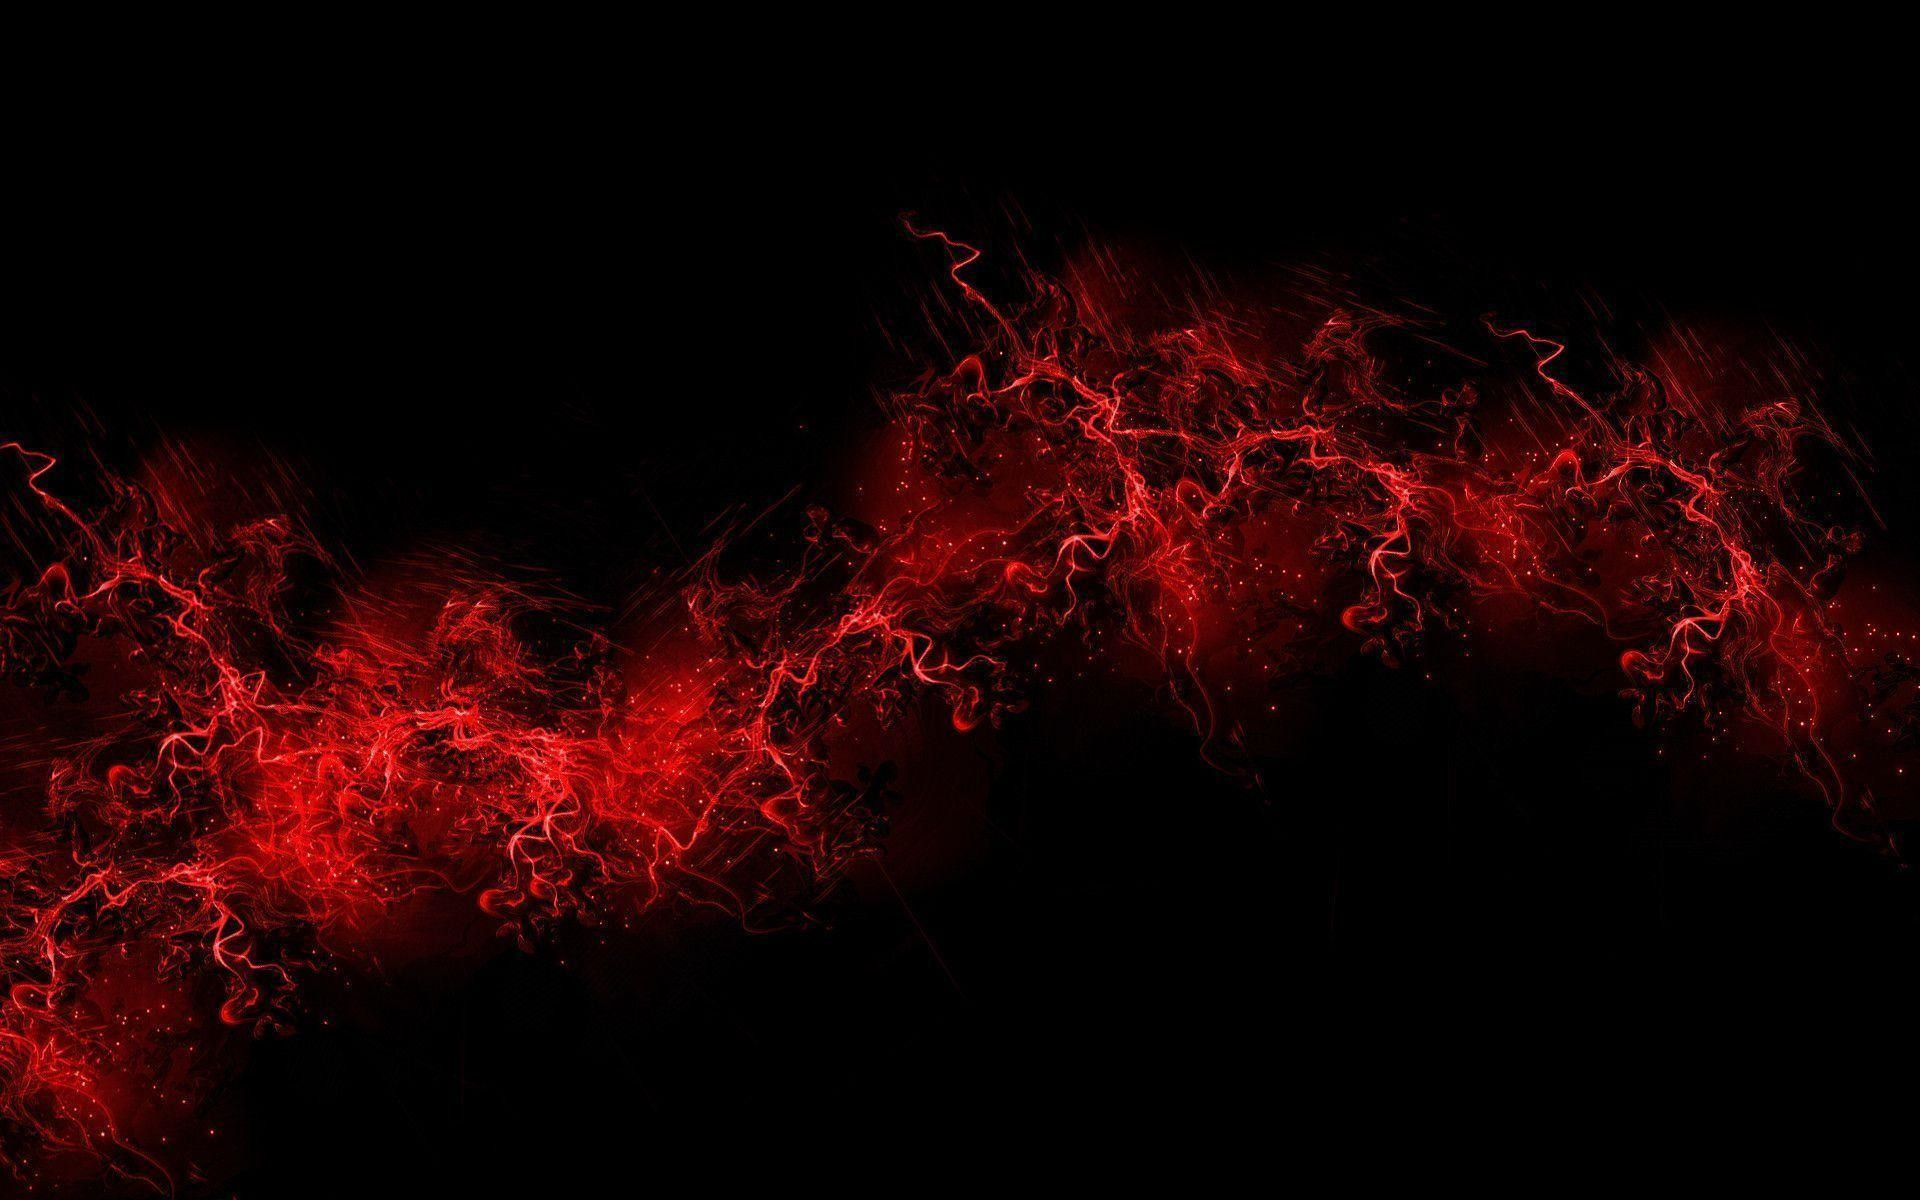 1920x1200 Wallpapers For > Red And Black Background Hd